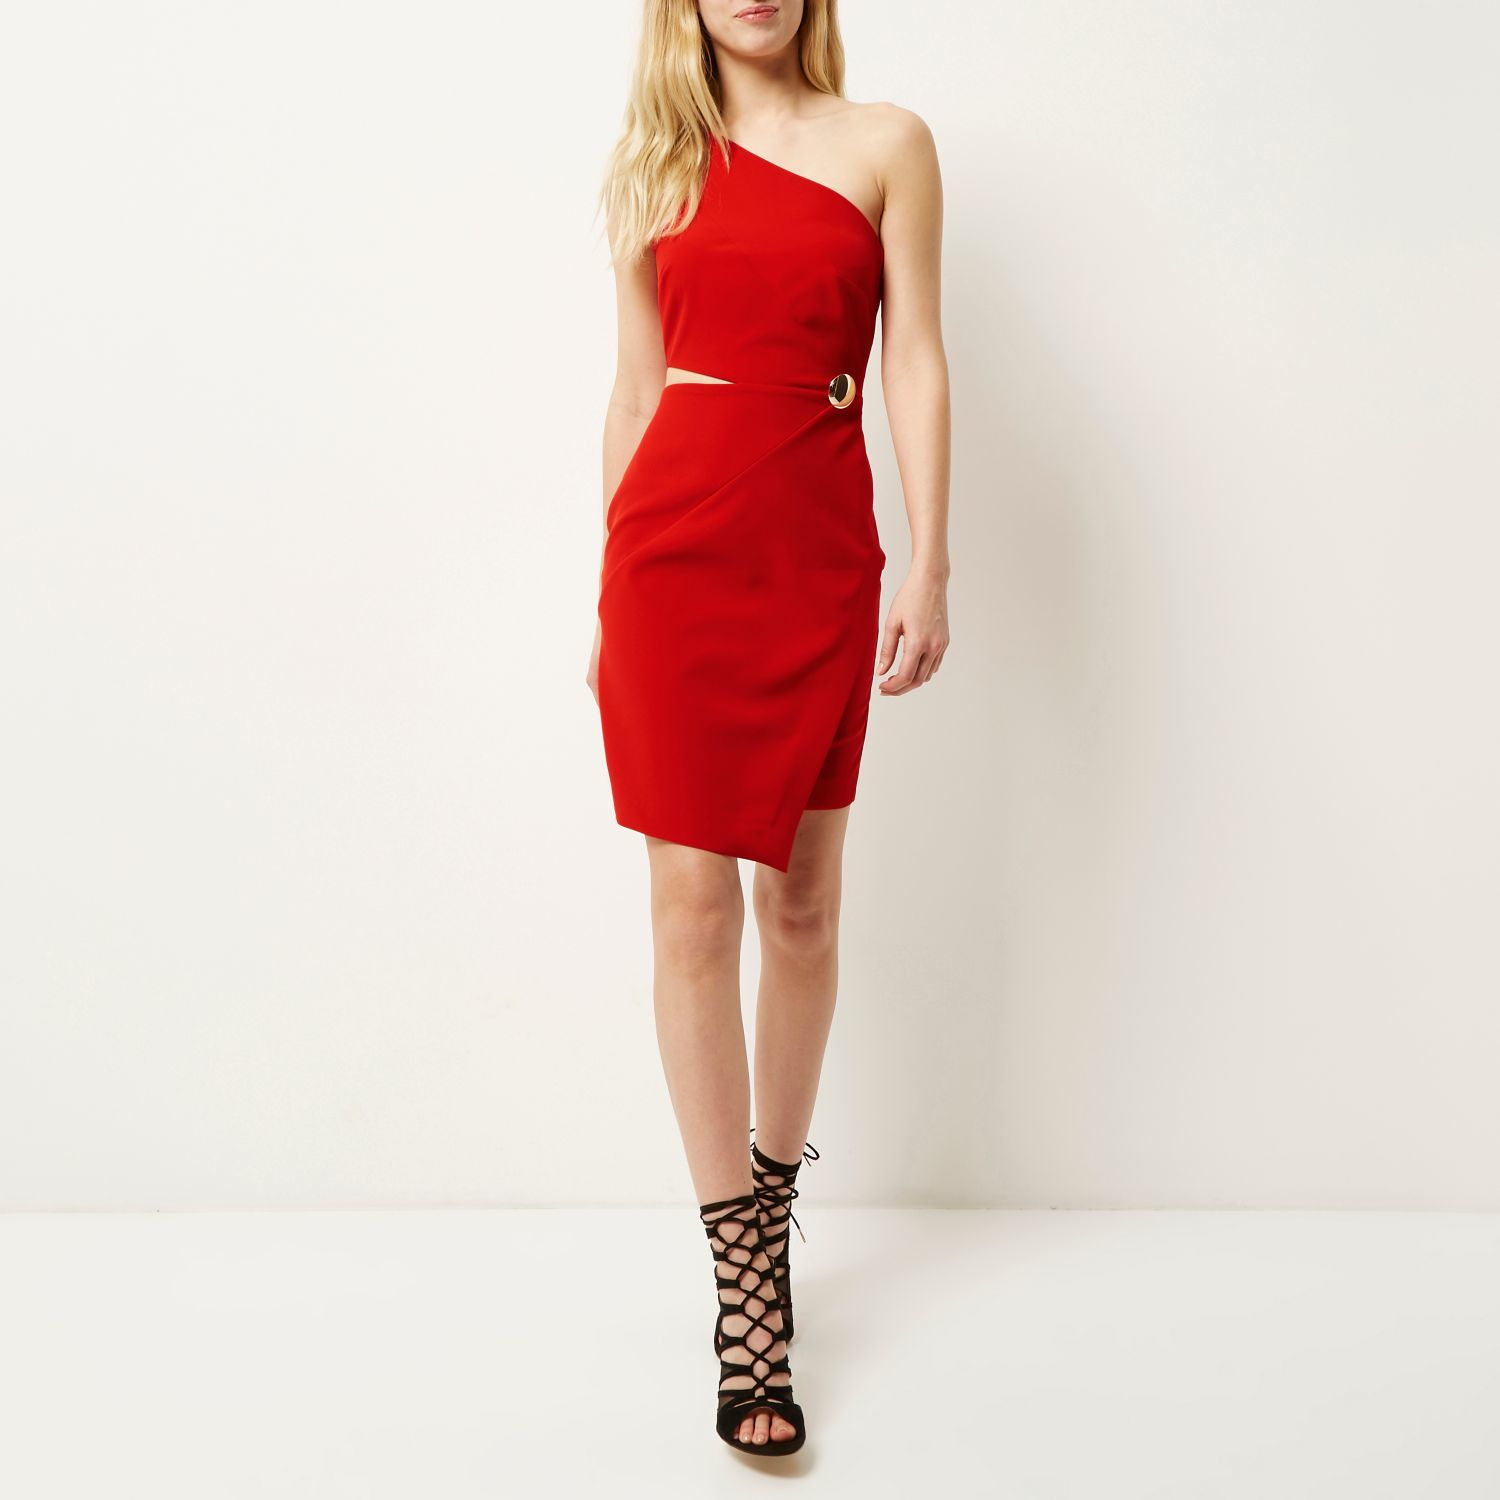 dbd7b9527e4 Lyst - River Island Red One Shoulder Cut-out Bodycon Dress in Red